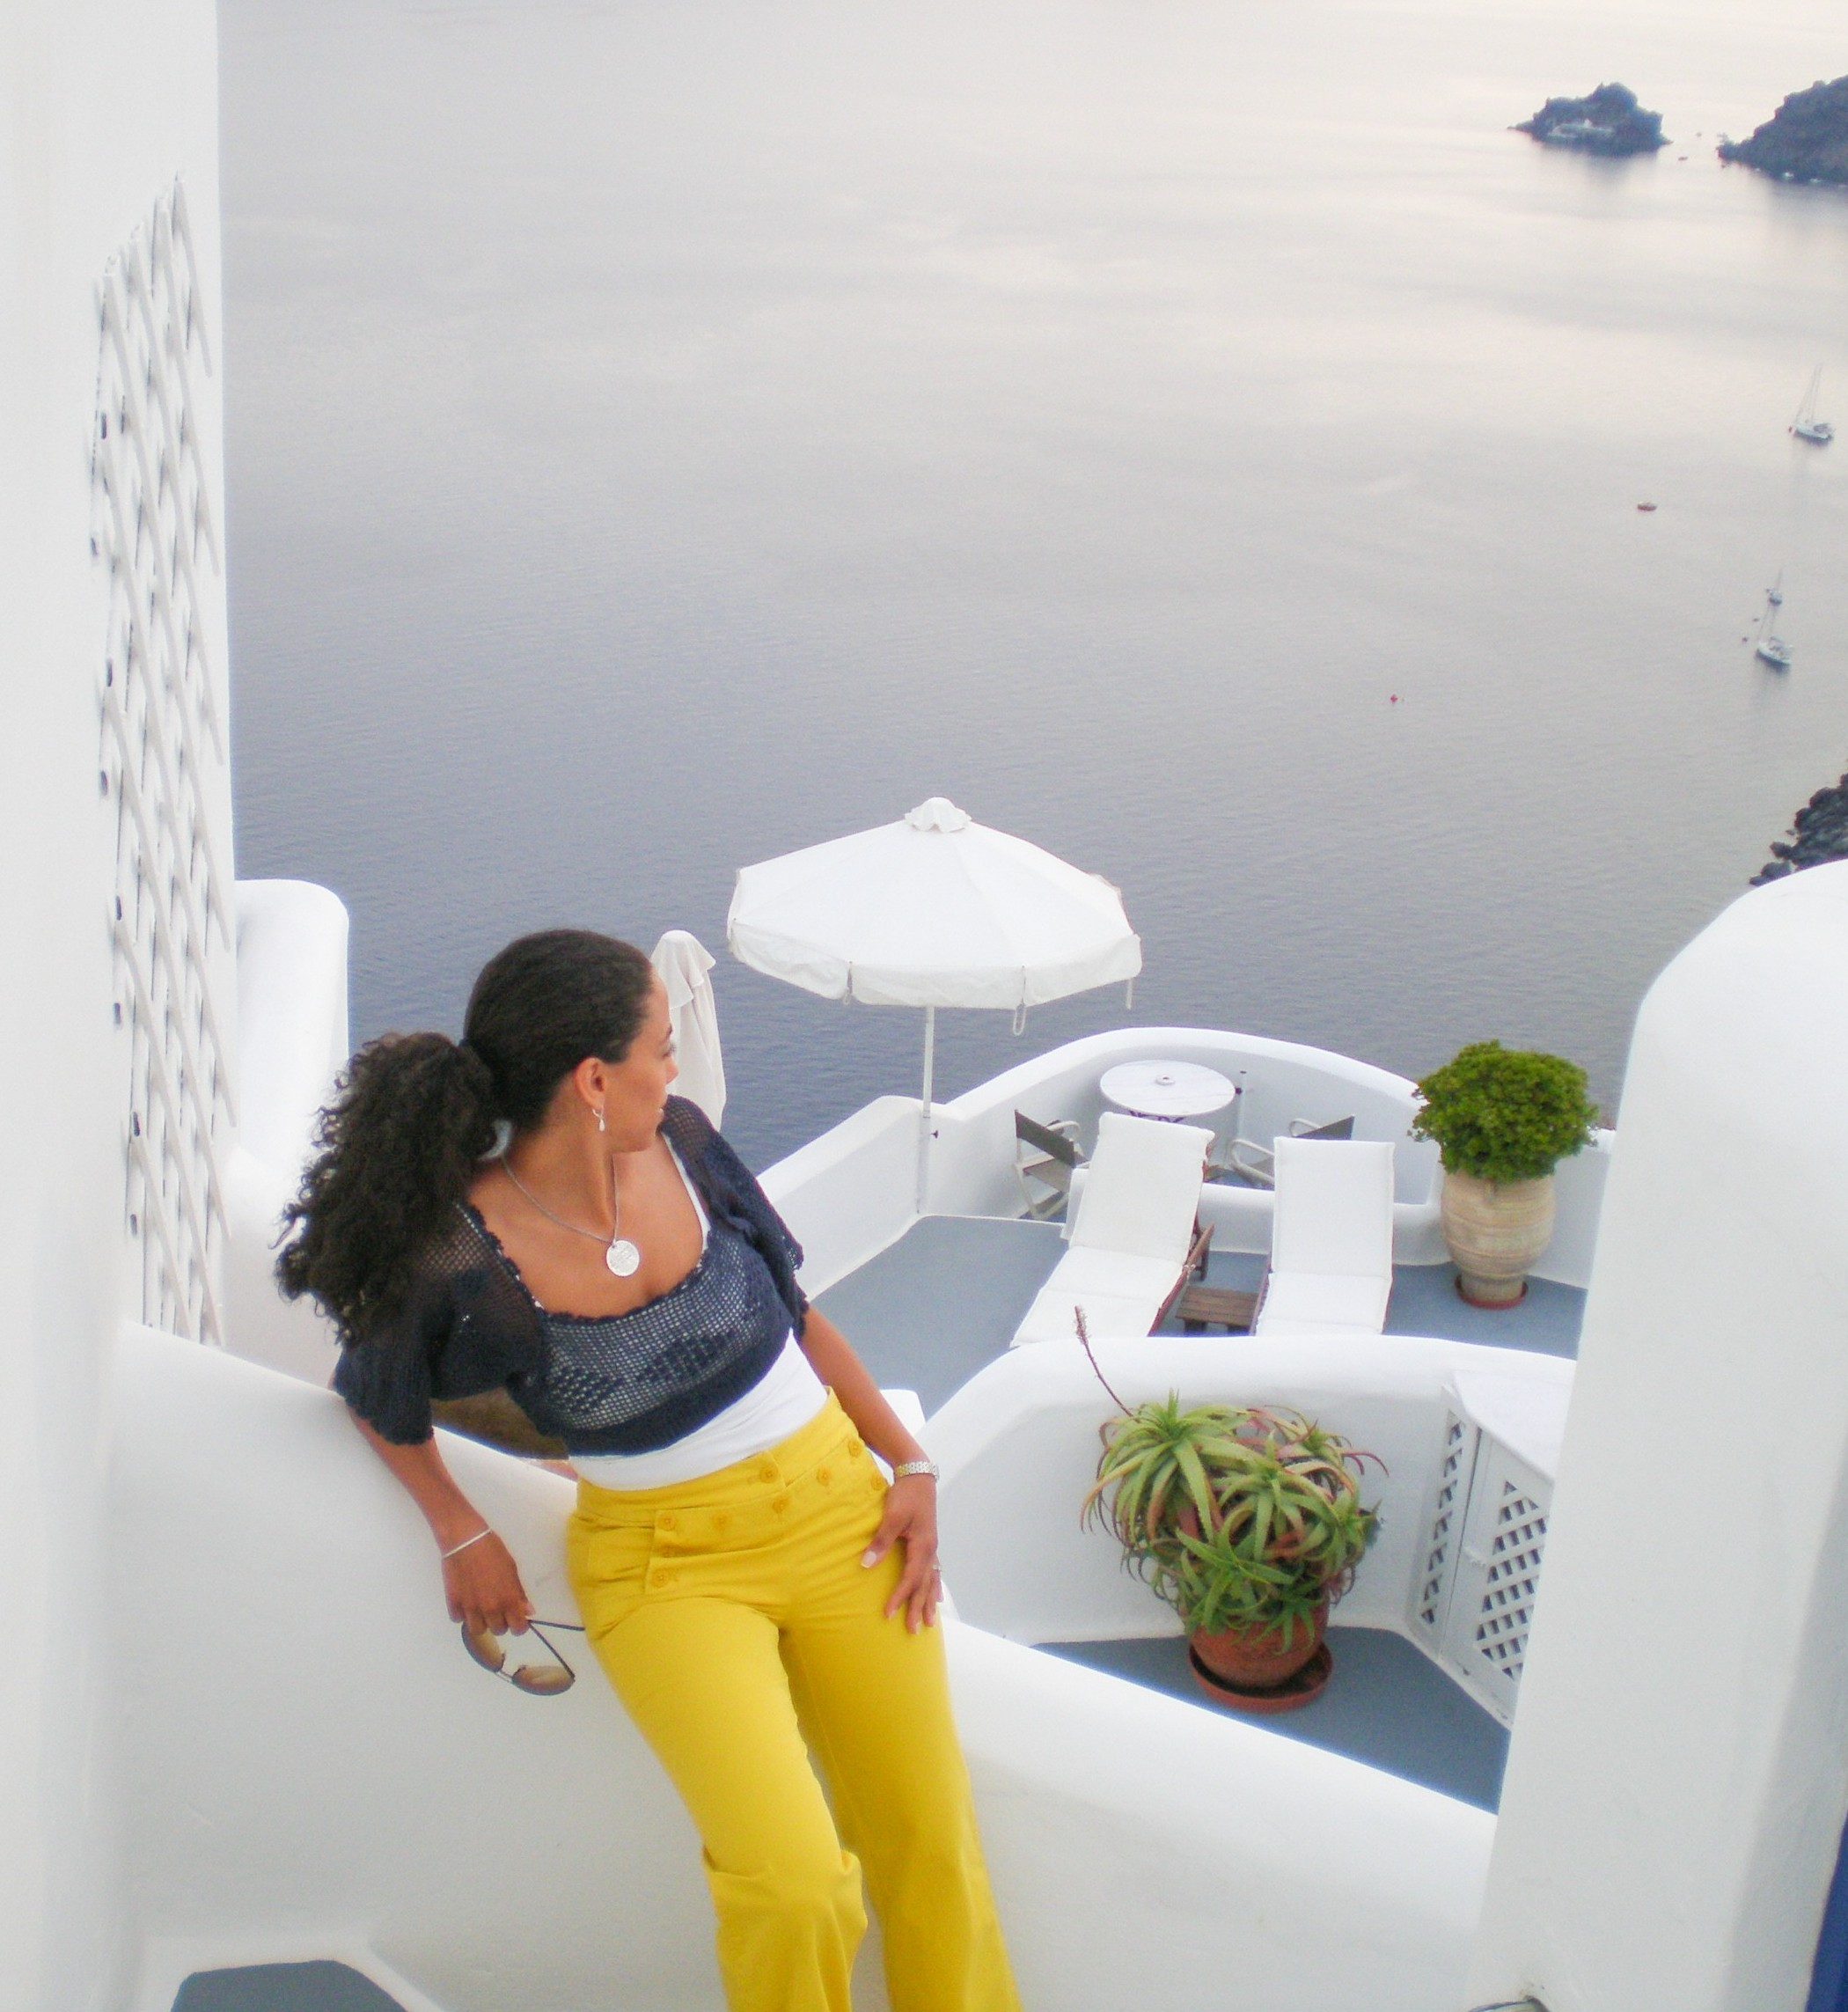 Blue and Yellow Outfit in Santorini